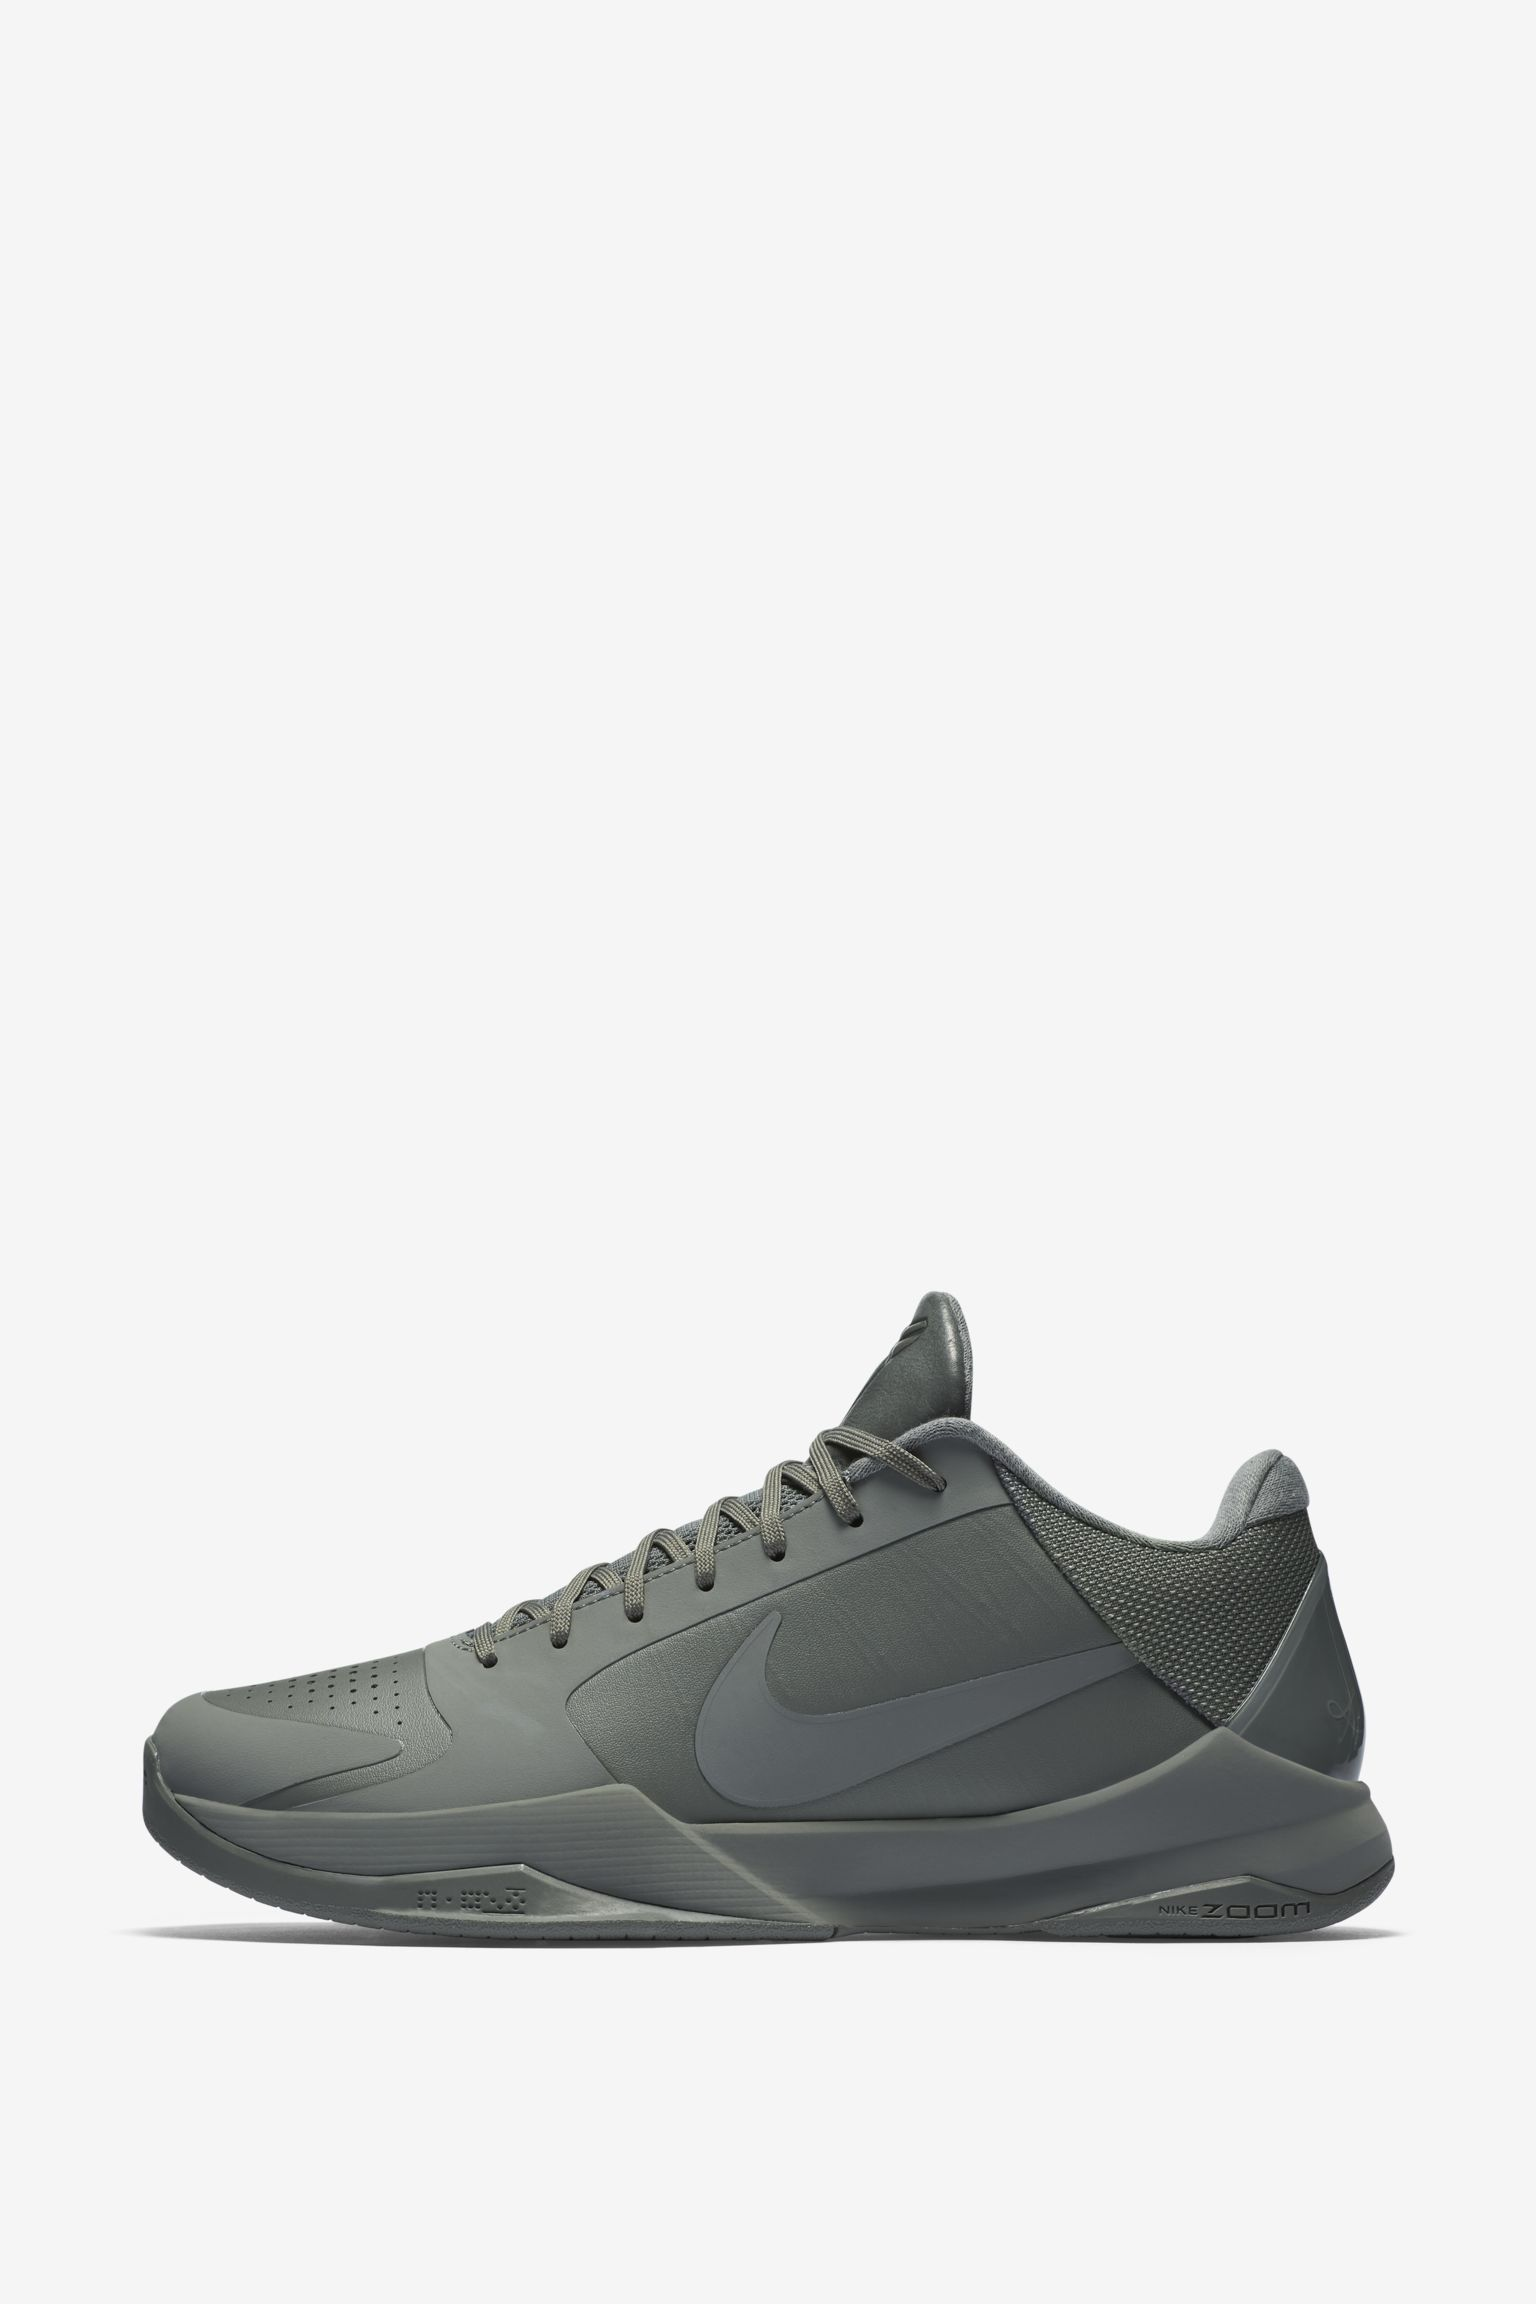 competitive price 66e84 e7197 italy free shipping only 69 nike kobe zoom kobe venomenon 5 black mamba  black gold white 804a2 9a5c0  wholesale nike kobe 5 black mamba release  date. ...